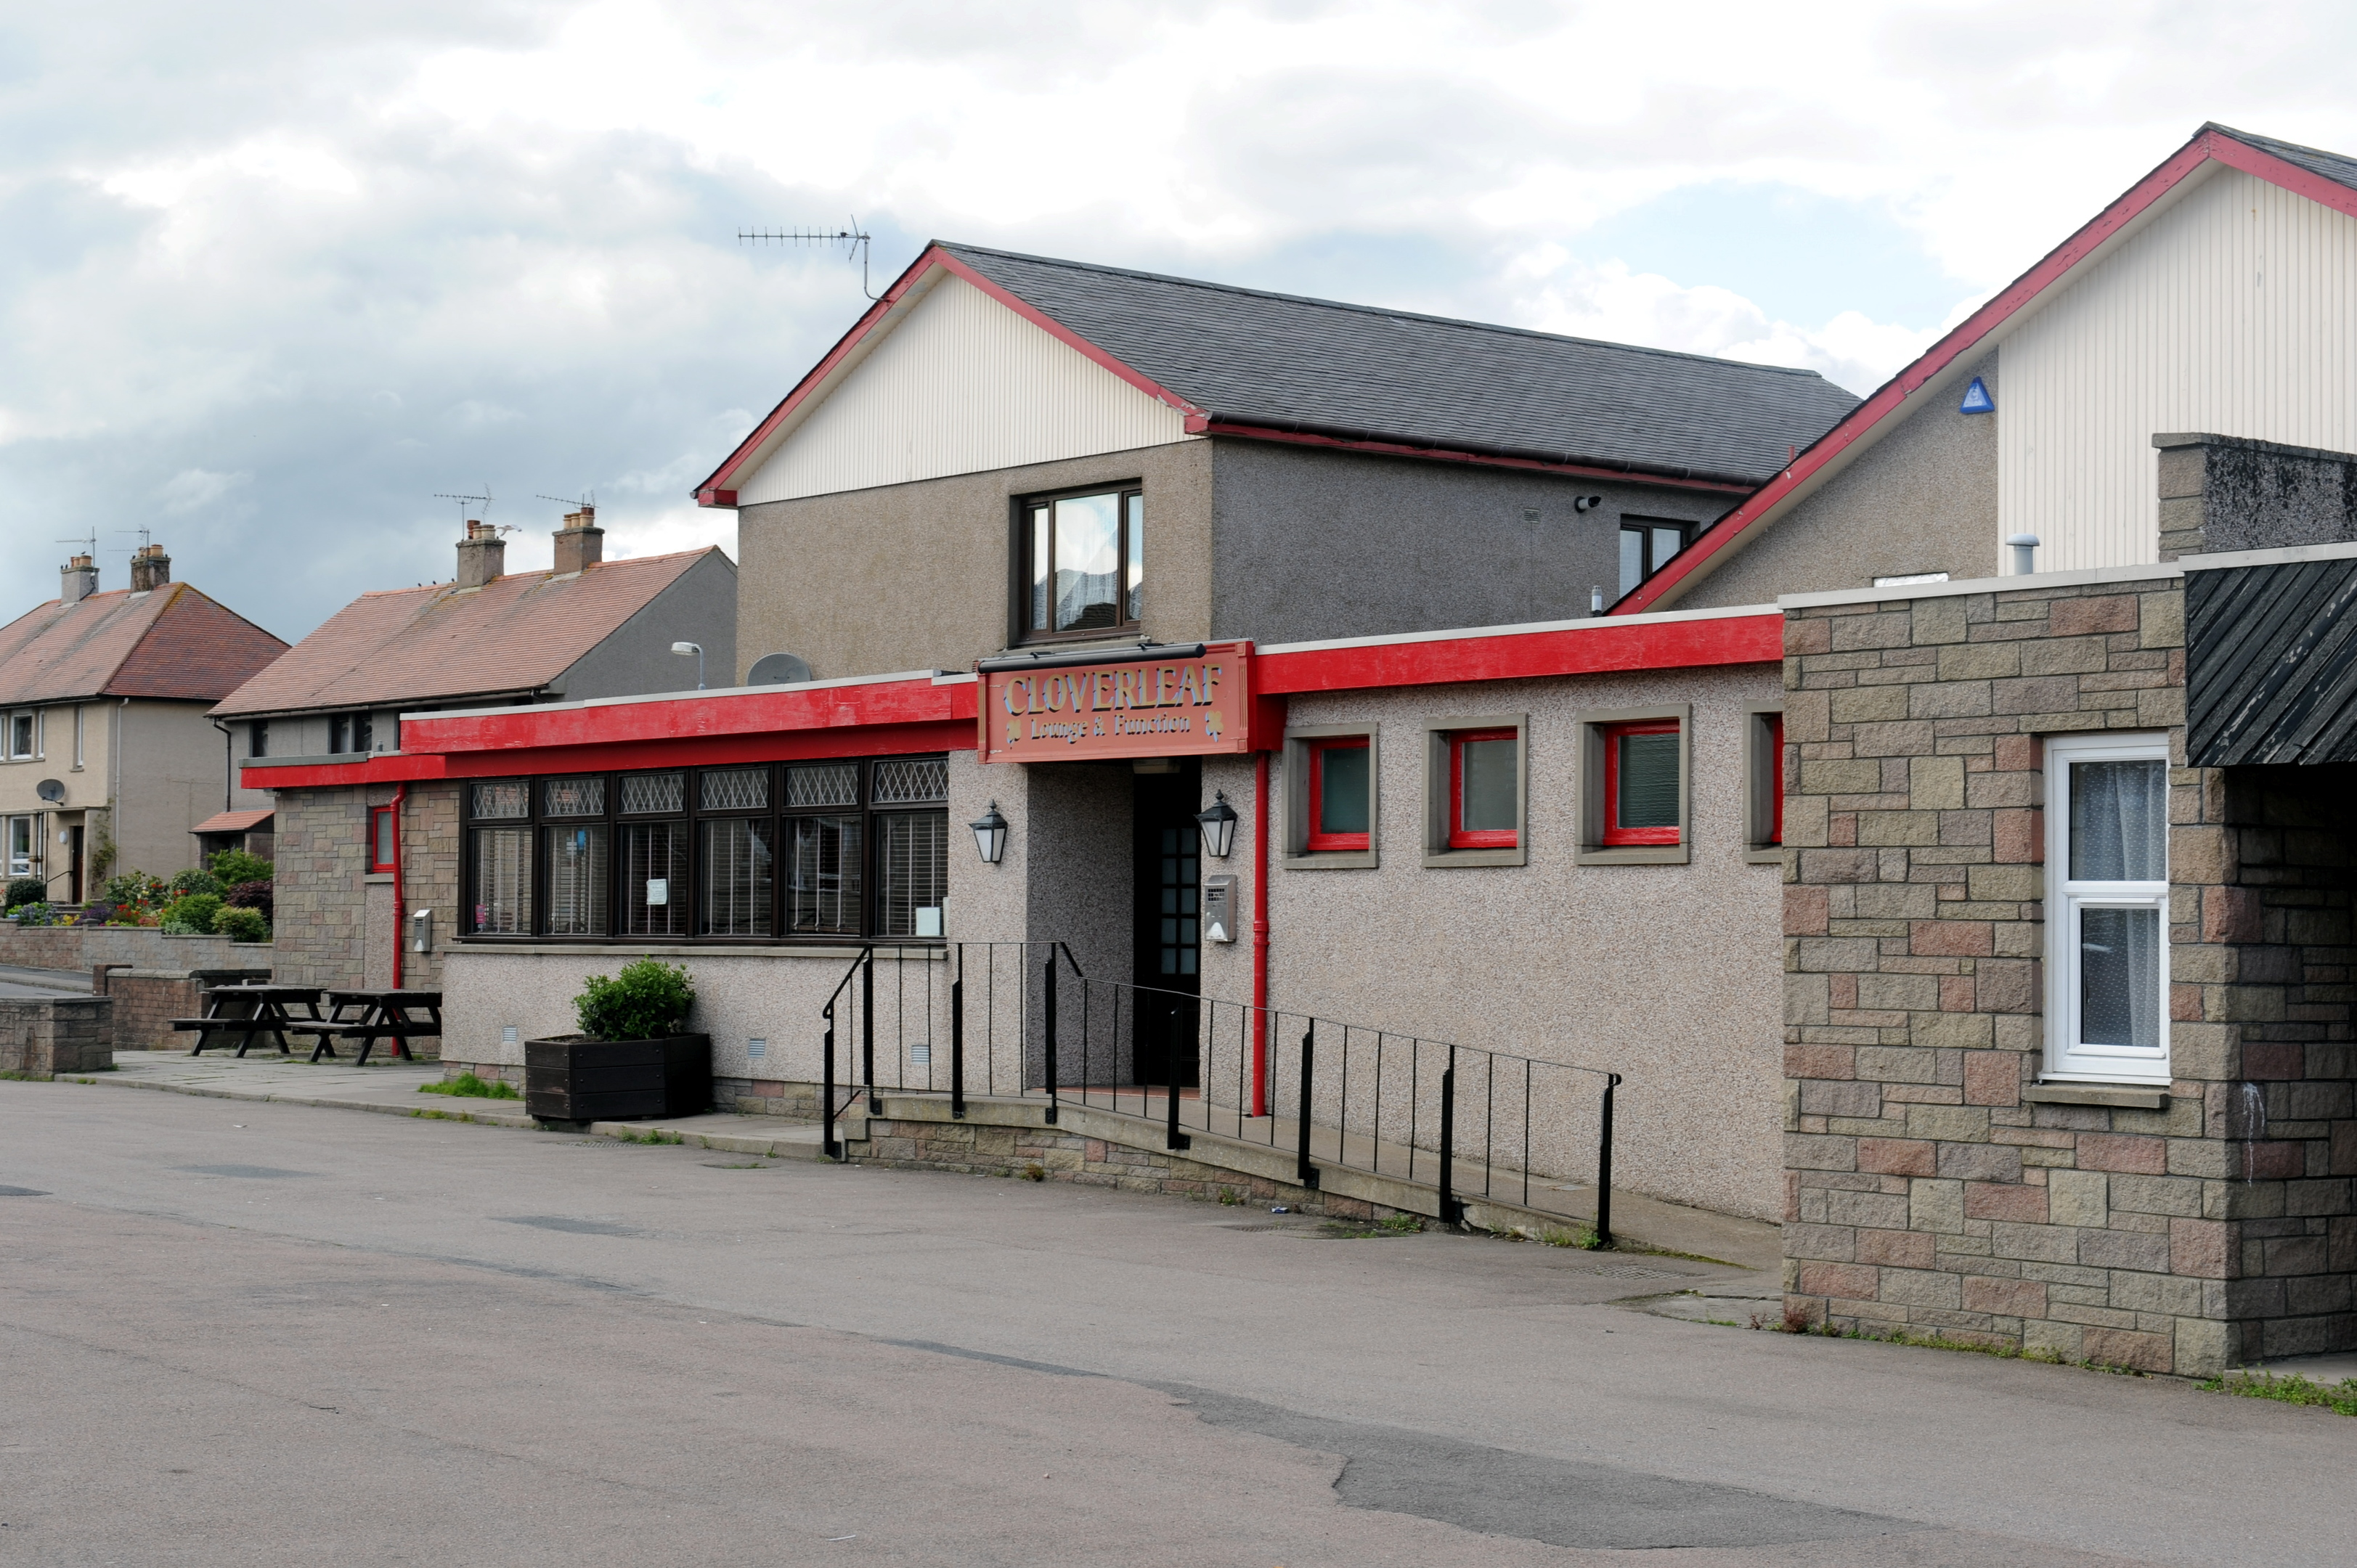 The Cloverleaf in Bucksburn has shut for the final time and is to be demolished to make way for 68 flats.